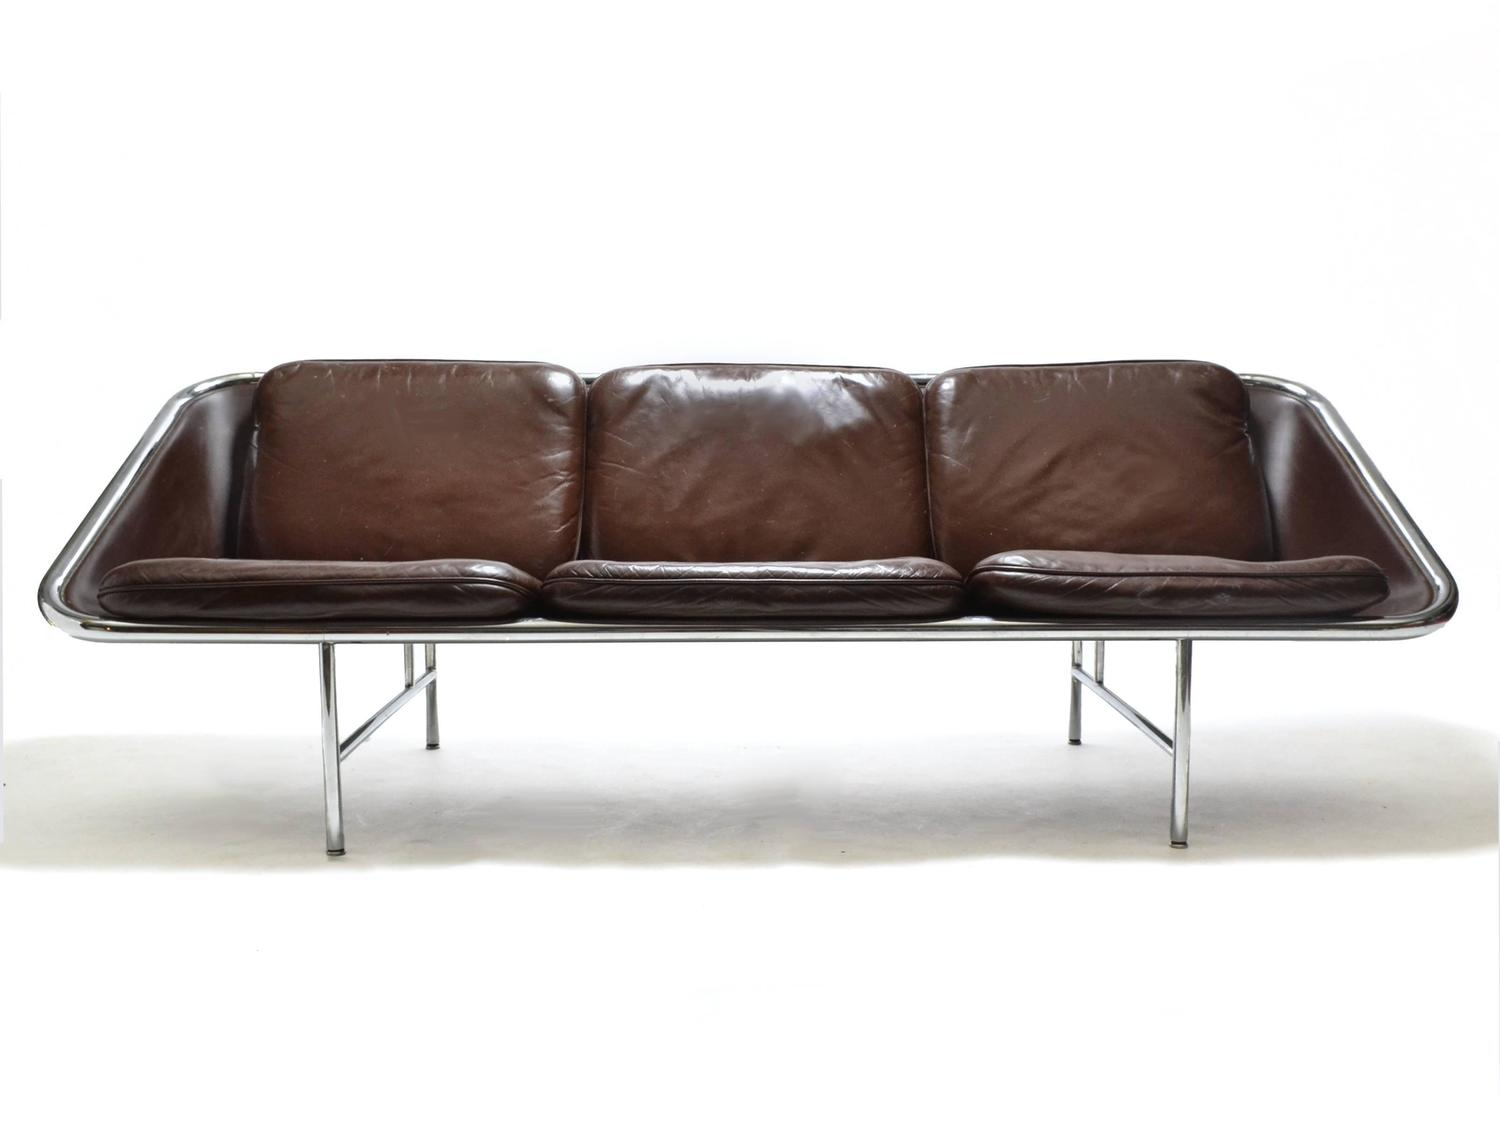 Interio Sofa George George Nelson Sling Sofa By Herman Miller At 1stdibs